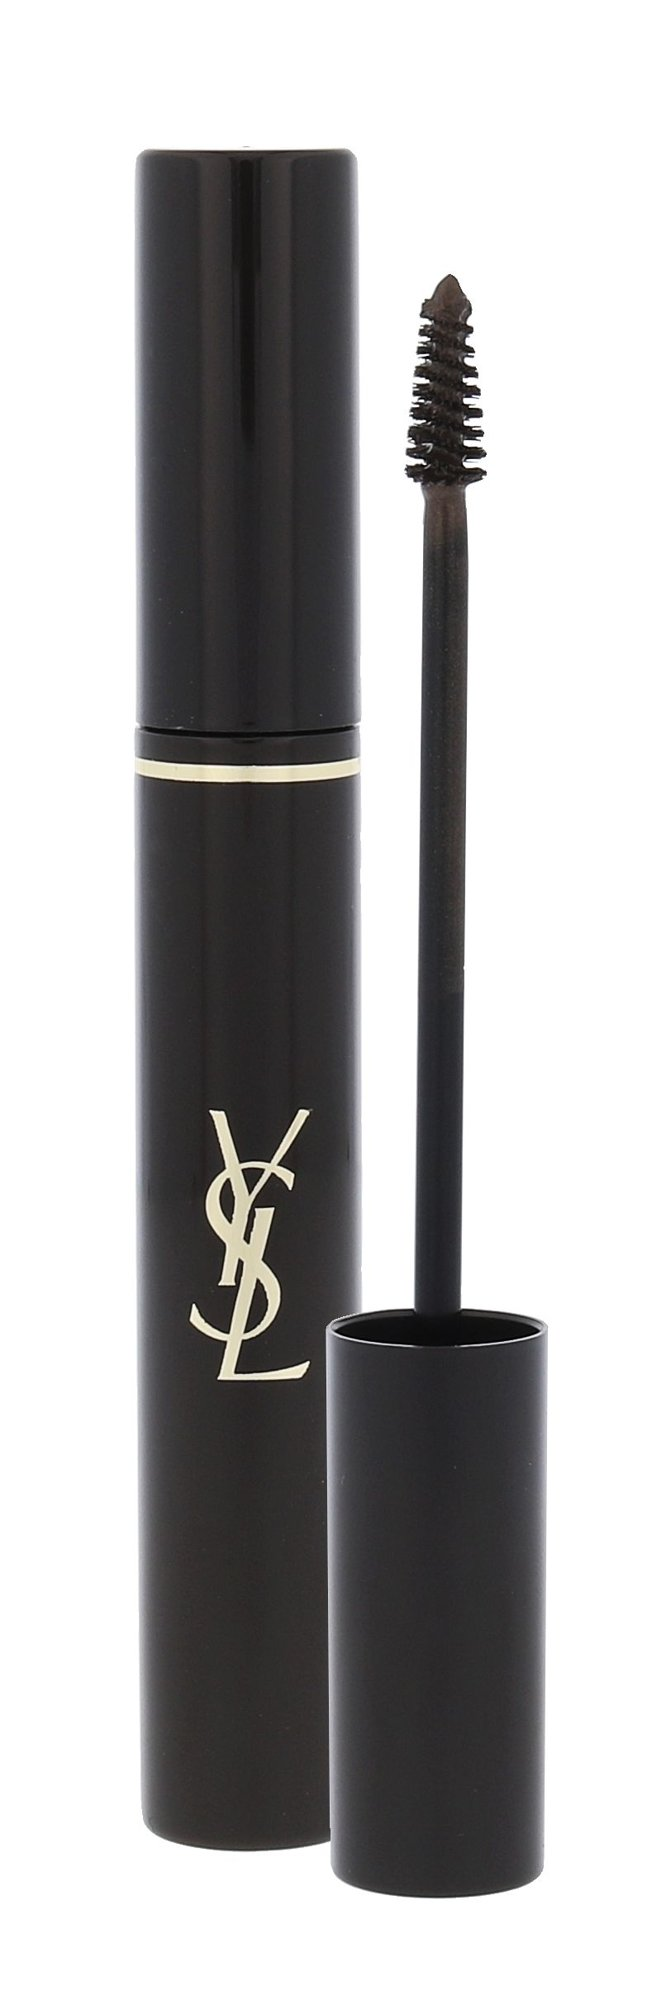 Yves Saint Laurent Couture Brow Eyebrow Mascara 7,7ml 1 Glazed Brown